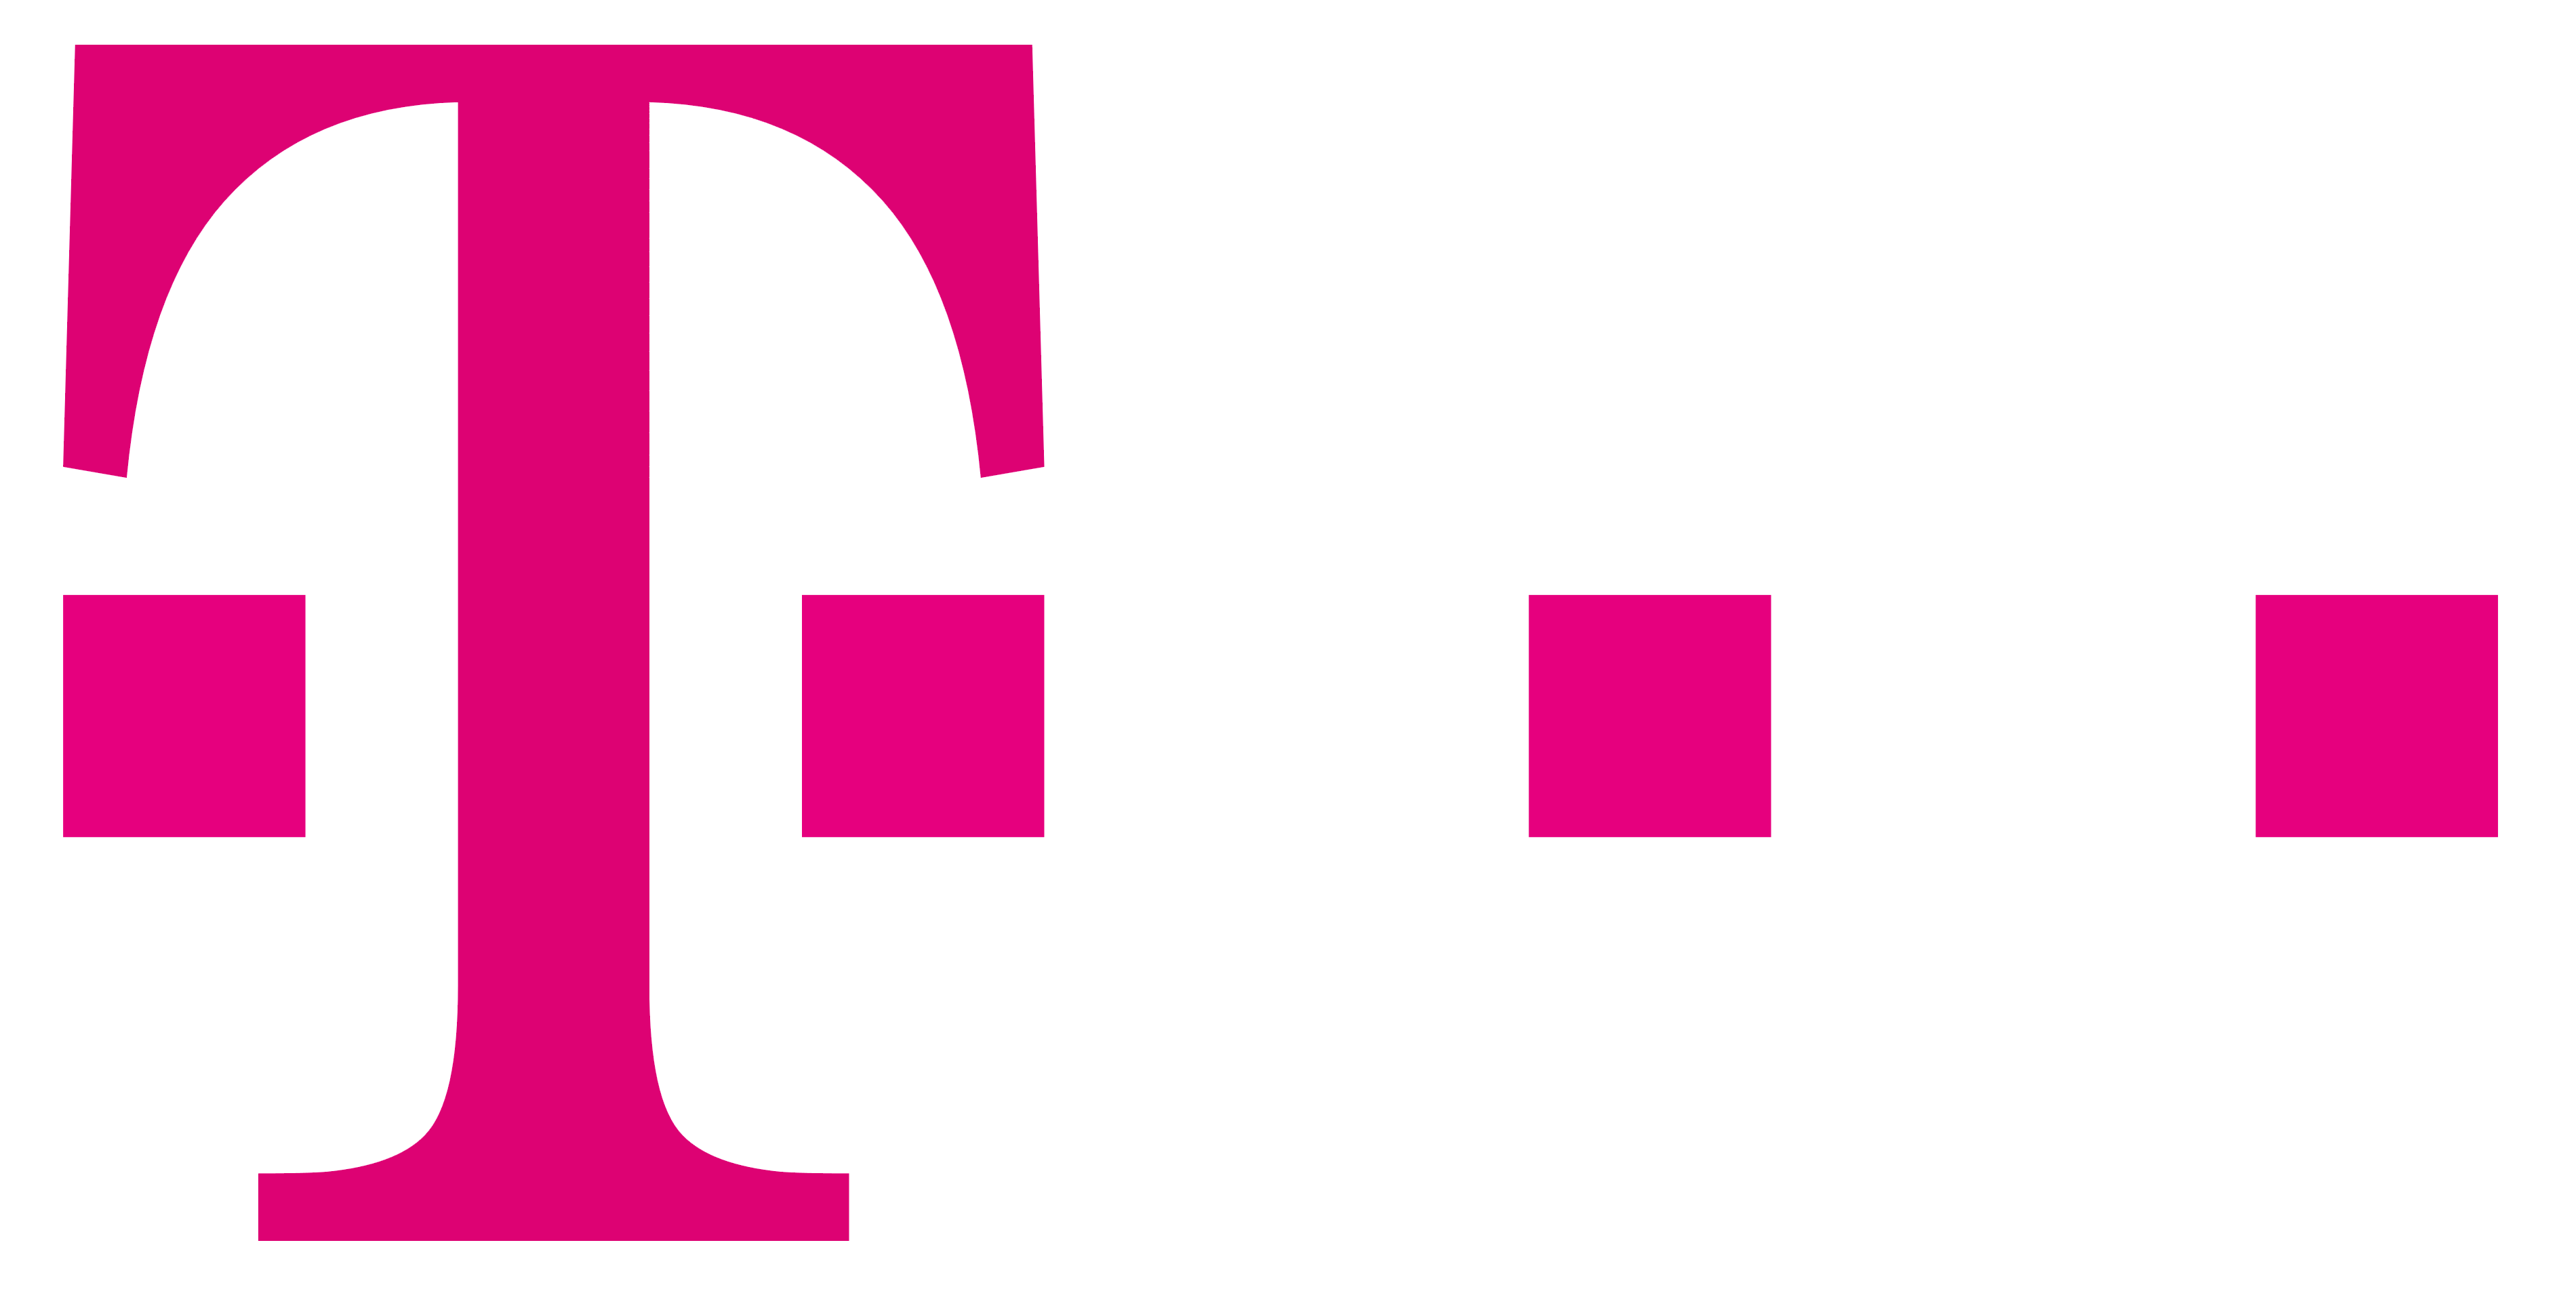 deutsche telekom logos download #31740